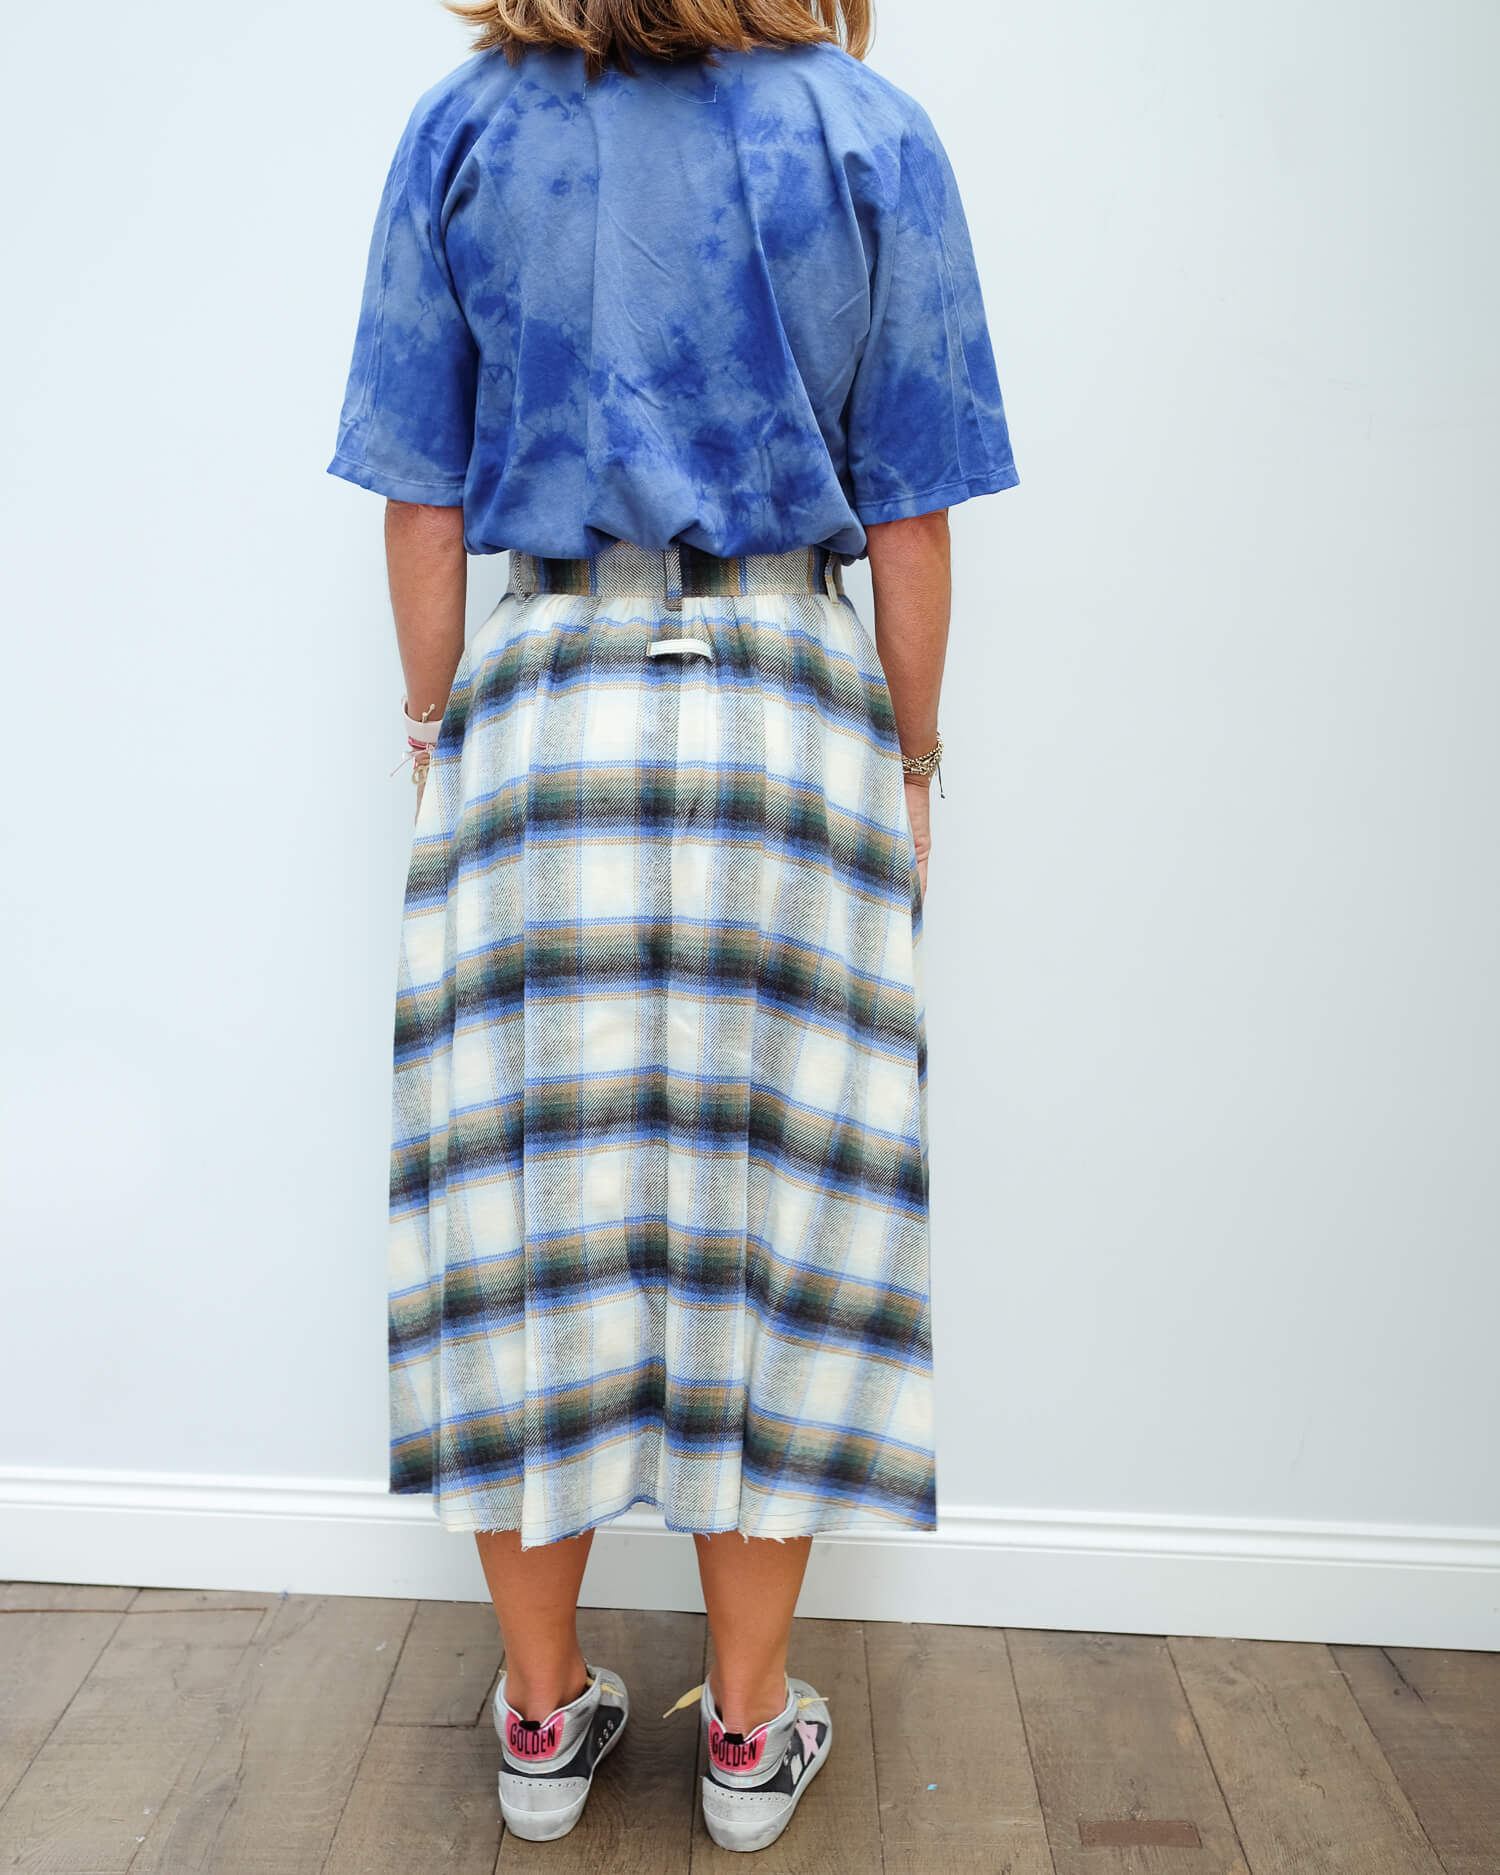 GG Adele skirt in check